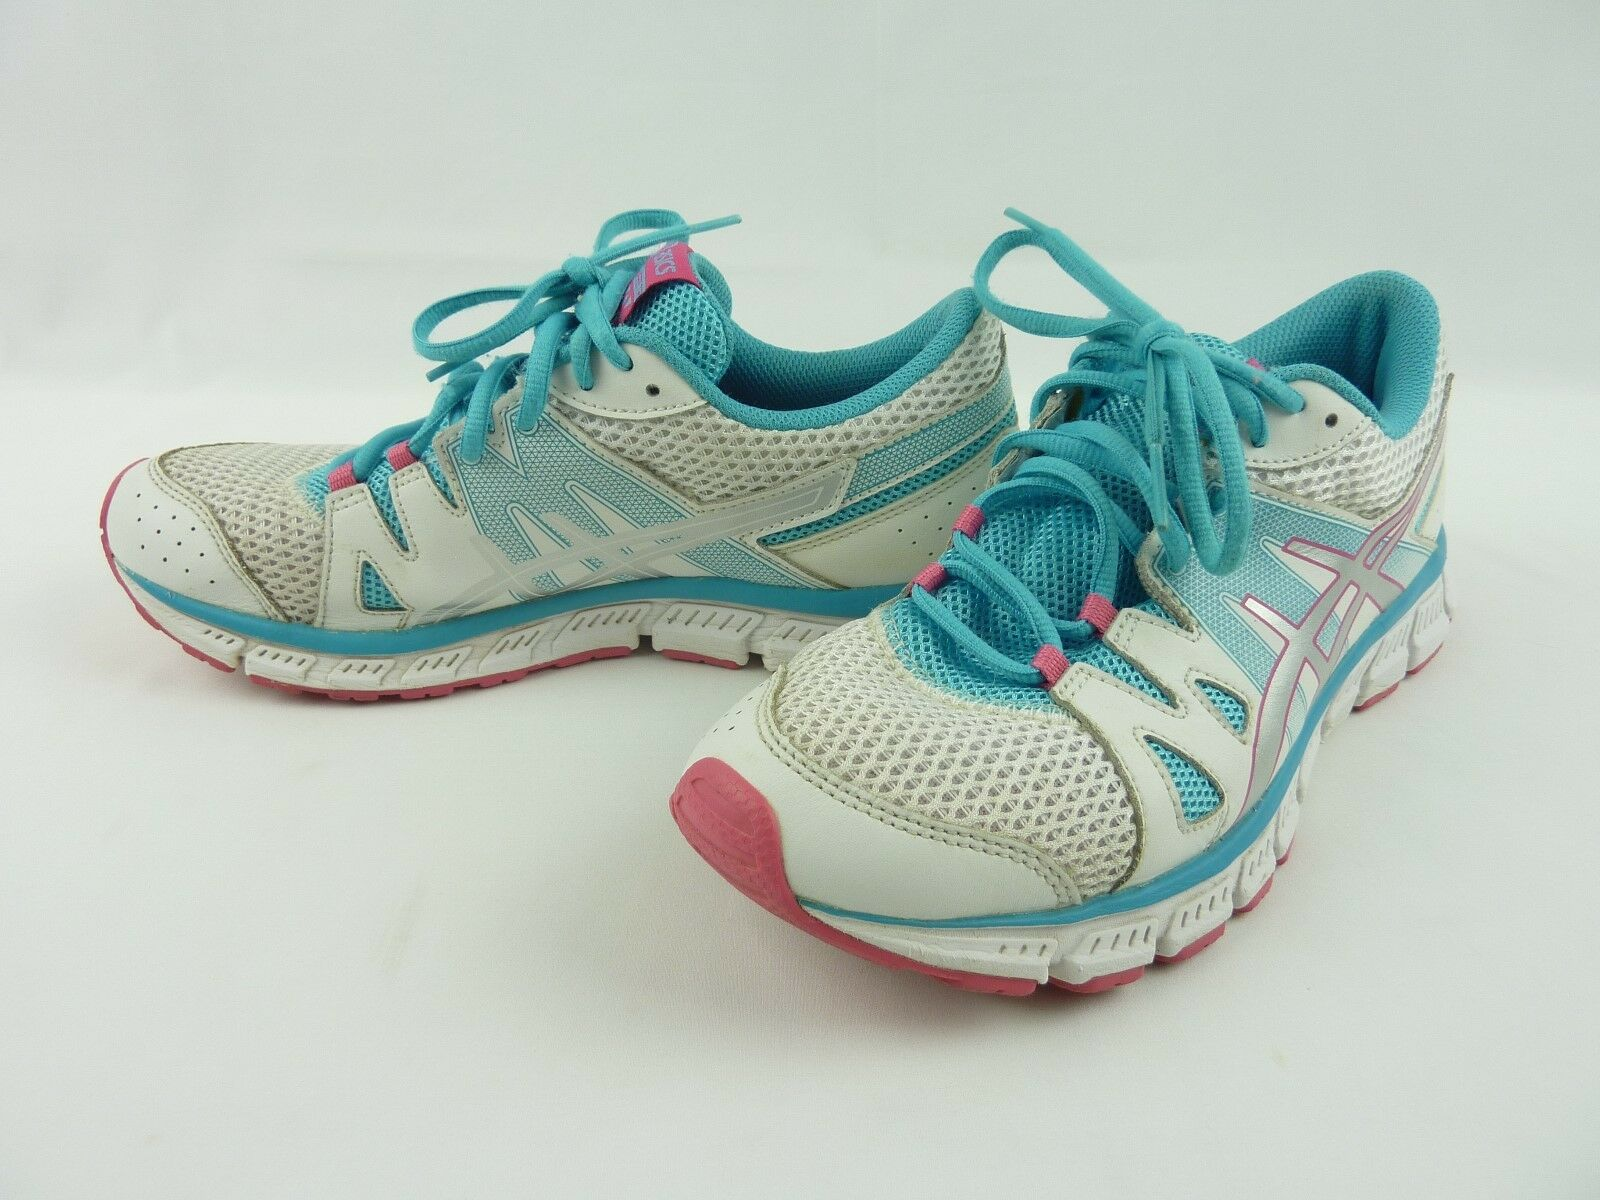 Womens 8.5 ASICS Gel Unifire TR Shoes F461113 White Blue & Pink F461113 Shoes 30dbf0